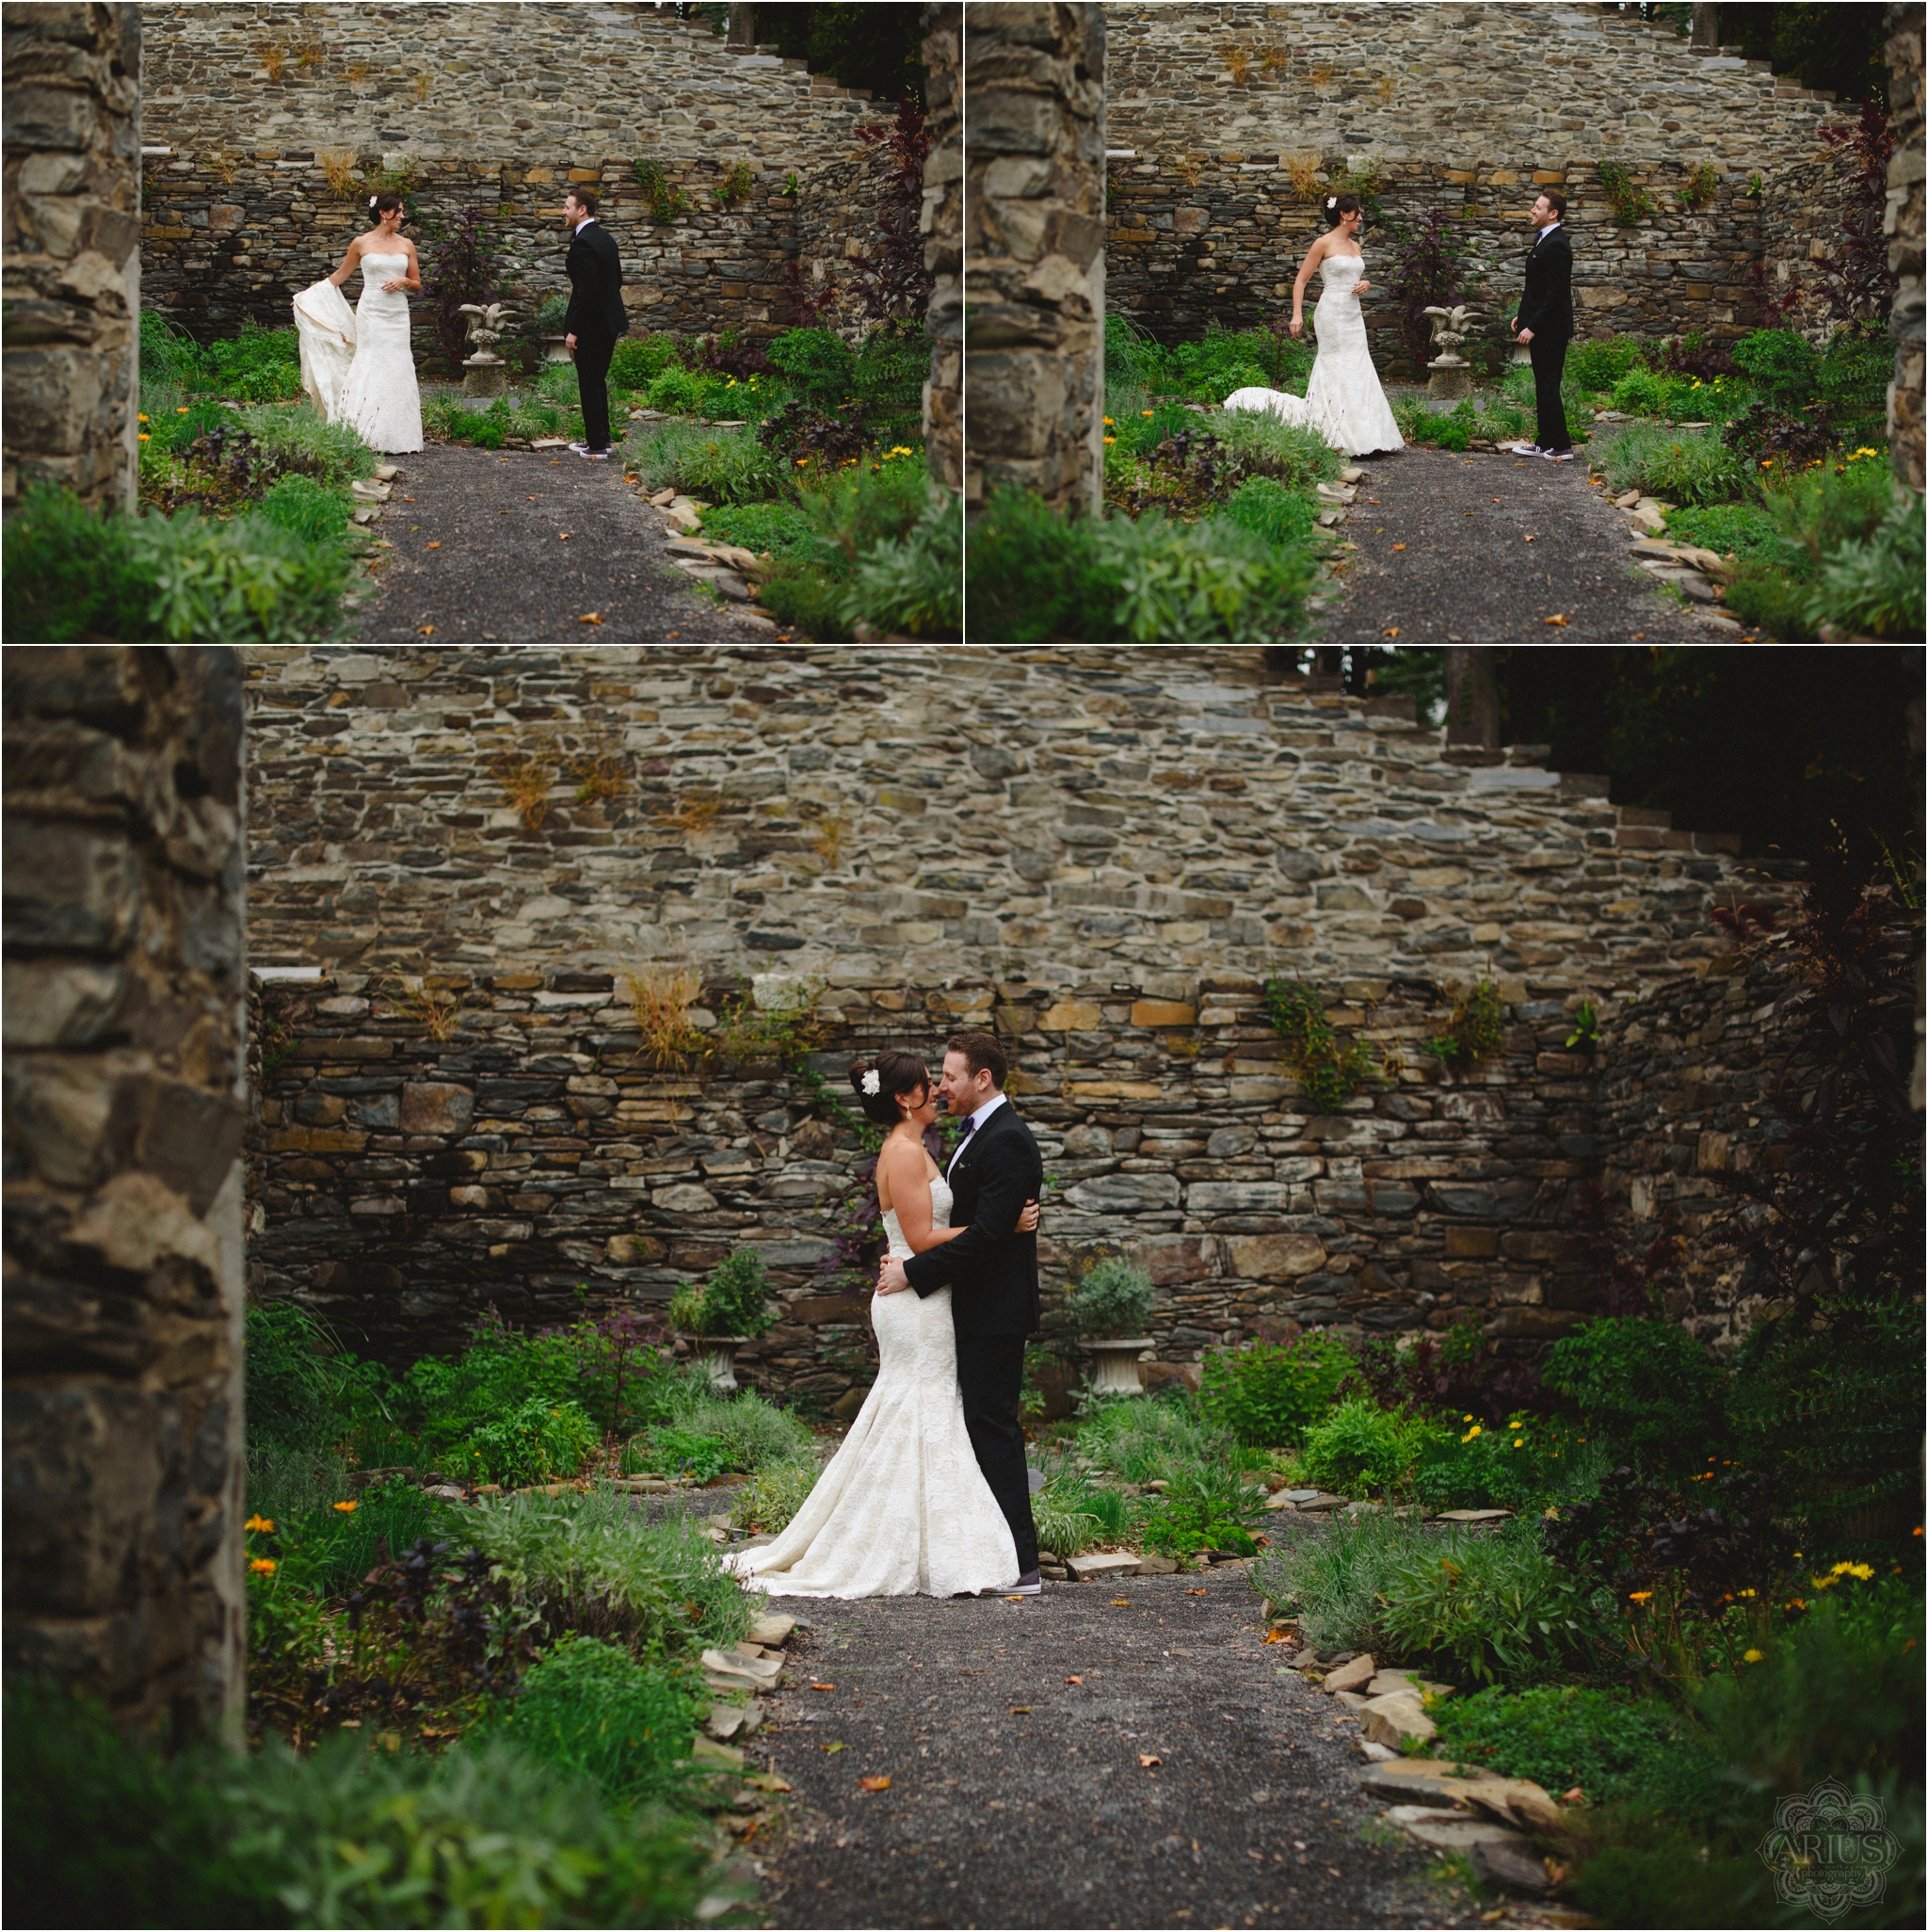 Wedding at Southwood Estate, Germantown, NY by Arius Photography